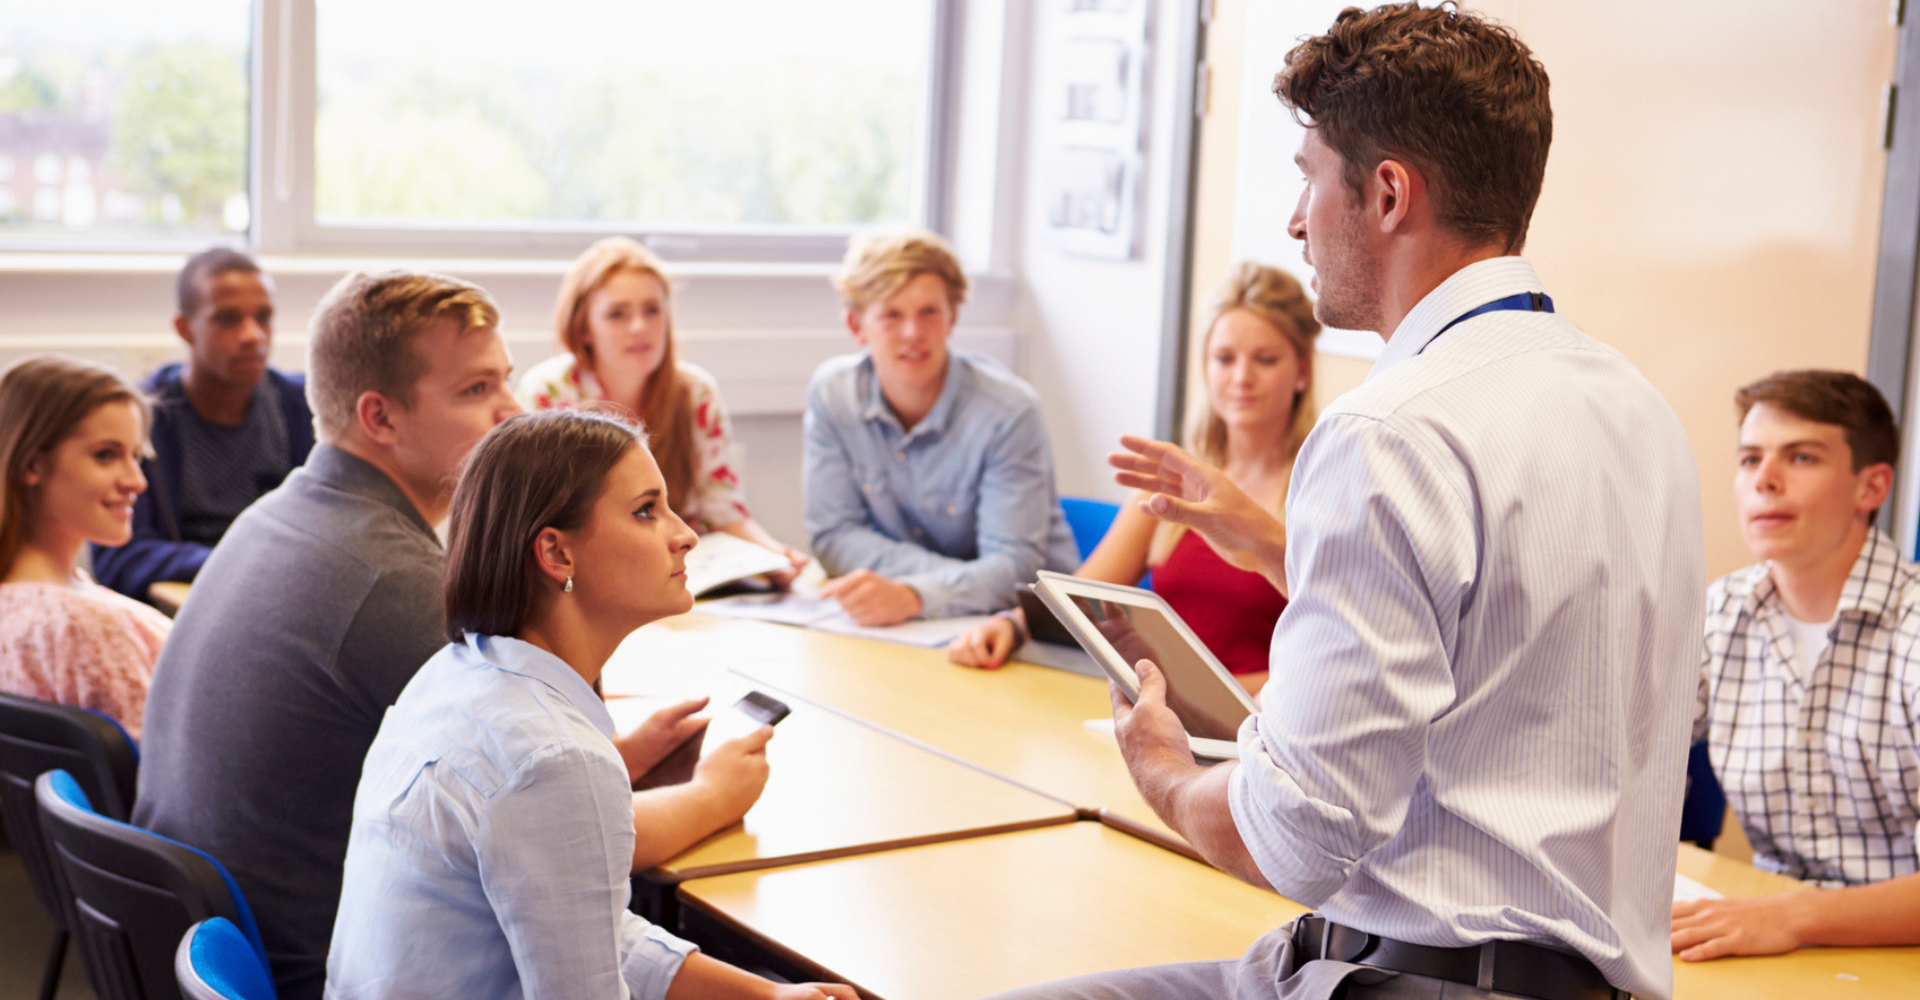 Establishing Rapport: Personal Interaction and Learning